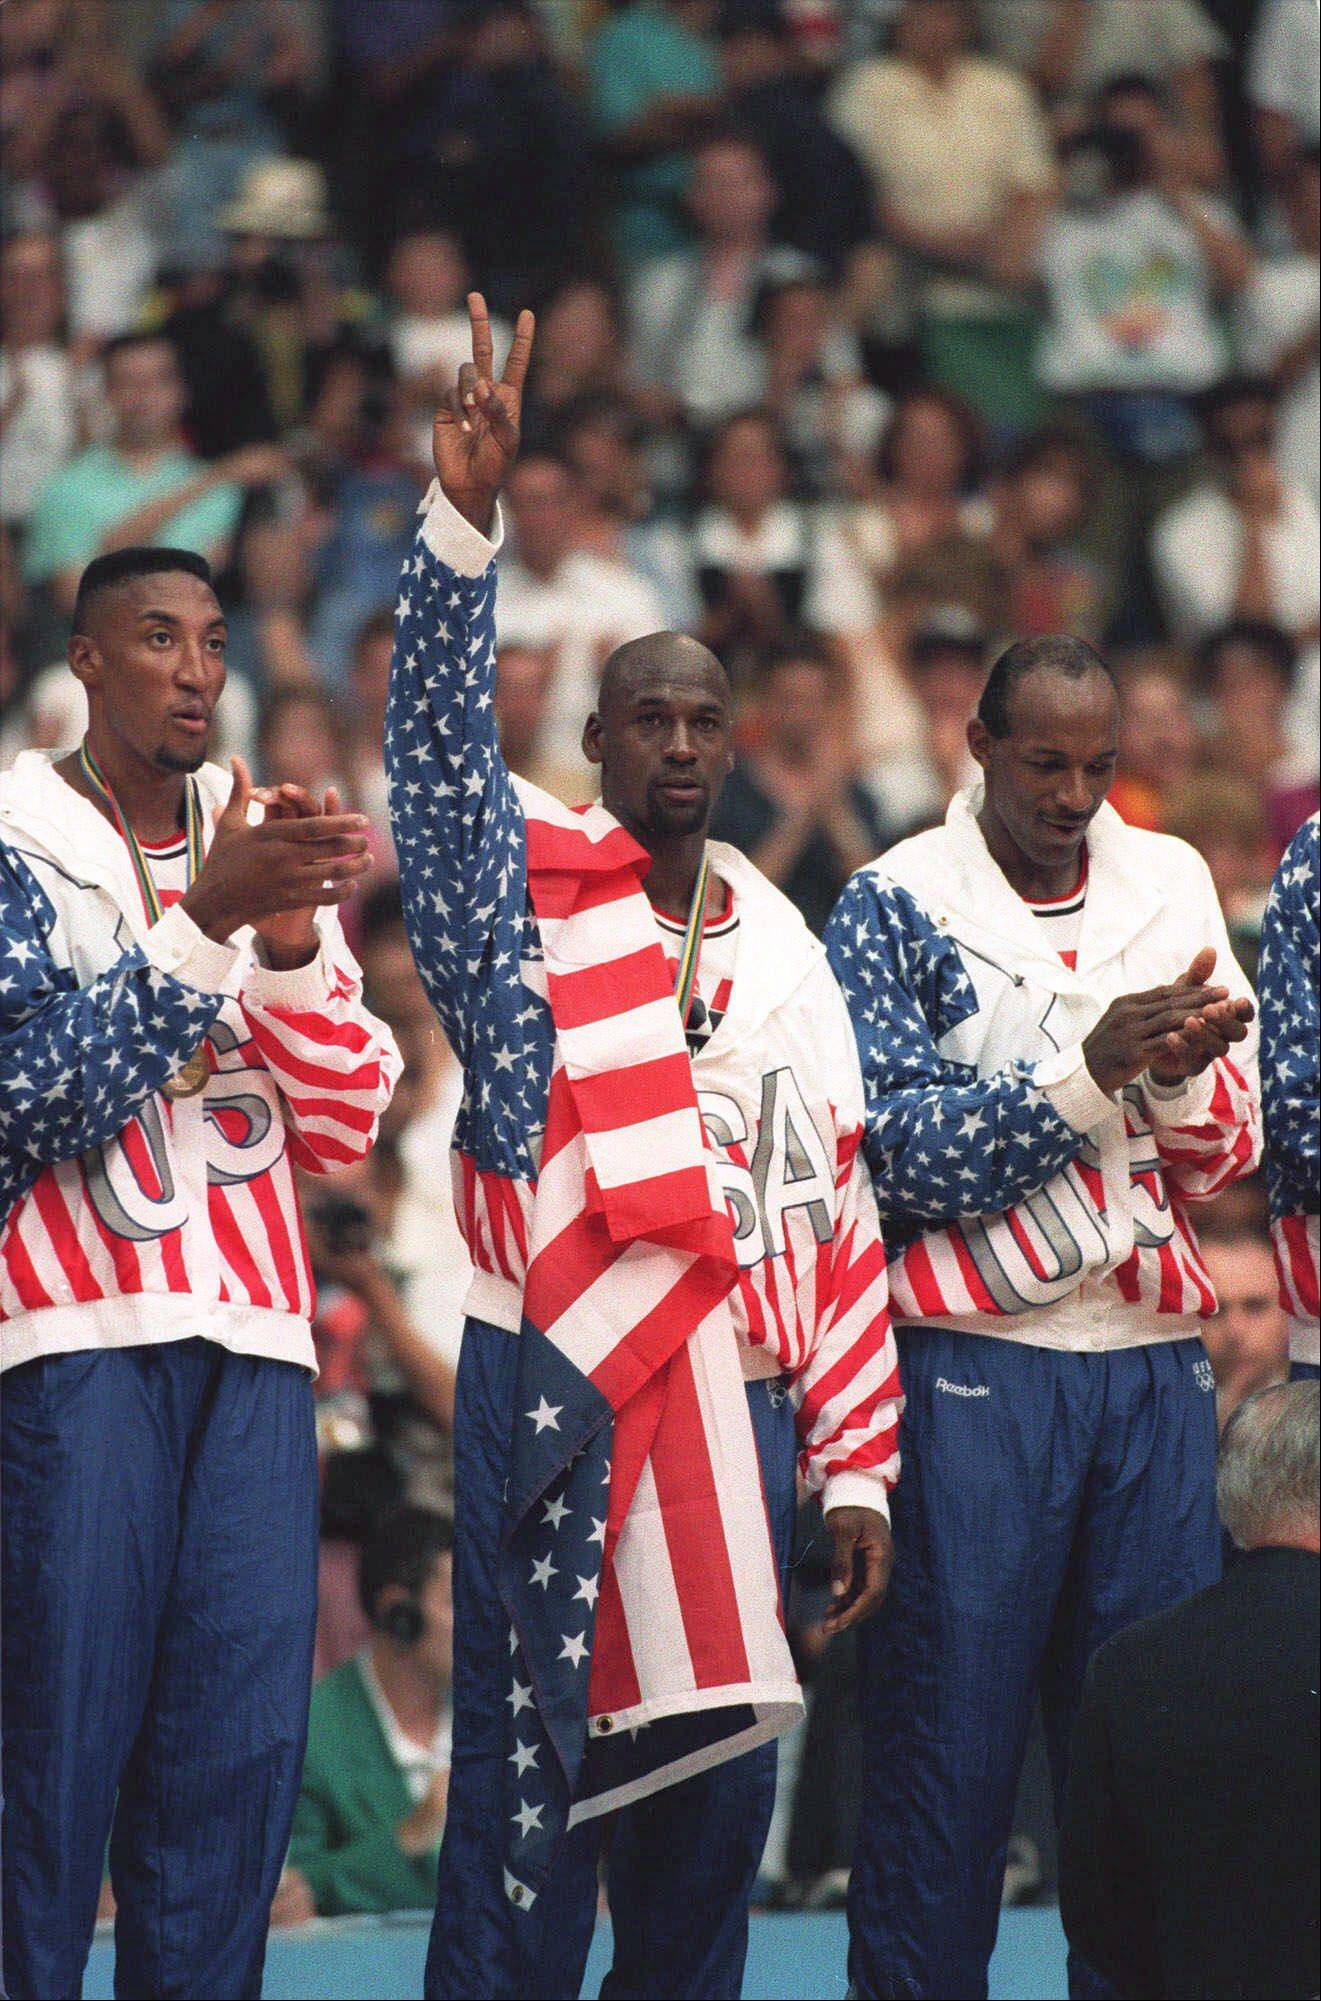 The USA's Scottie Pippen, left, with Michael Jordan, center, and Clyde Drexler, pose with their gold medals after beating Croatia 117-85 in Olympic basketball at Barcelona, Aug. 8, 1992.